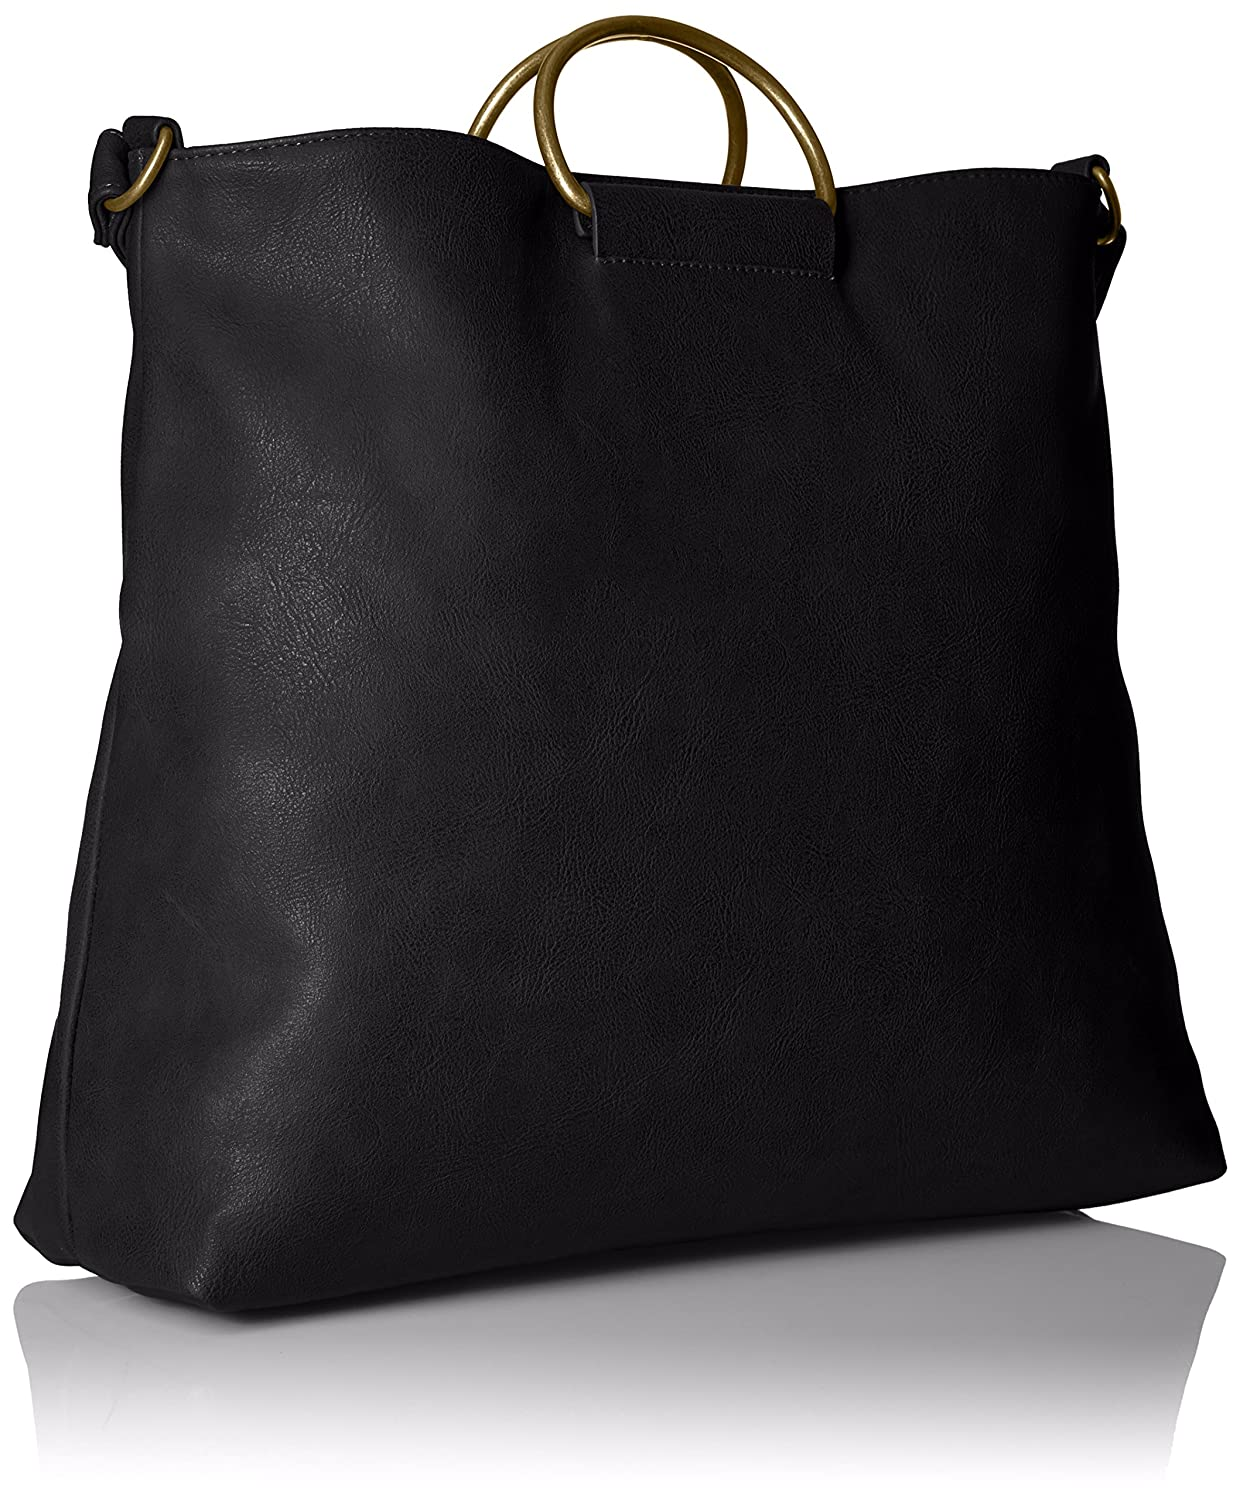 T-Shirt & Jeans Perf Tote with Metal Handles Cross Body